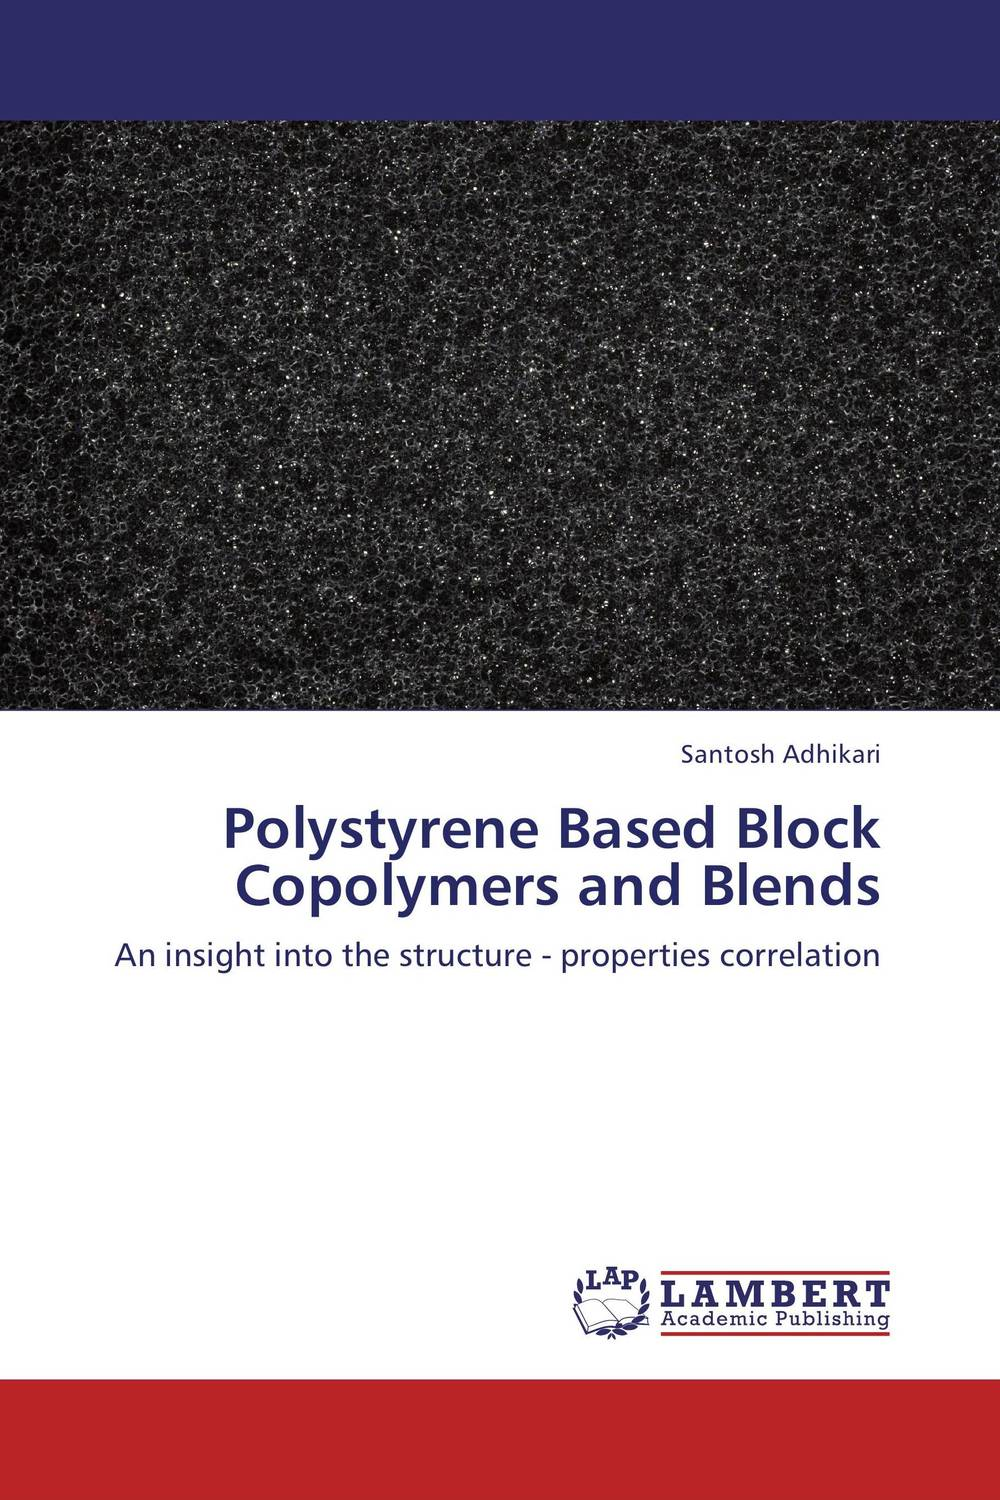 Polystyrene Based Block Copolymers and Blends rakesh kumar balbir singh kaith and anshul sharma psyllium based polymer and their salt resistant swelling behaviour